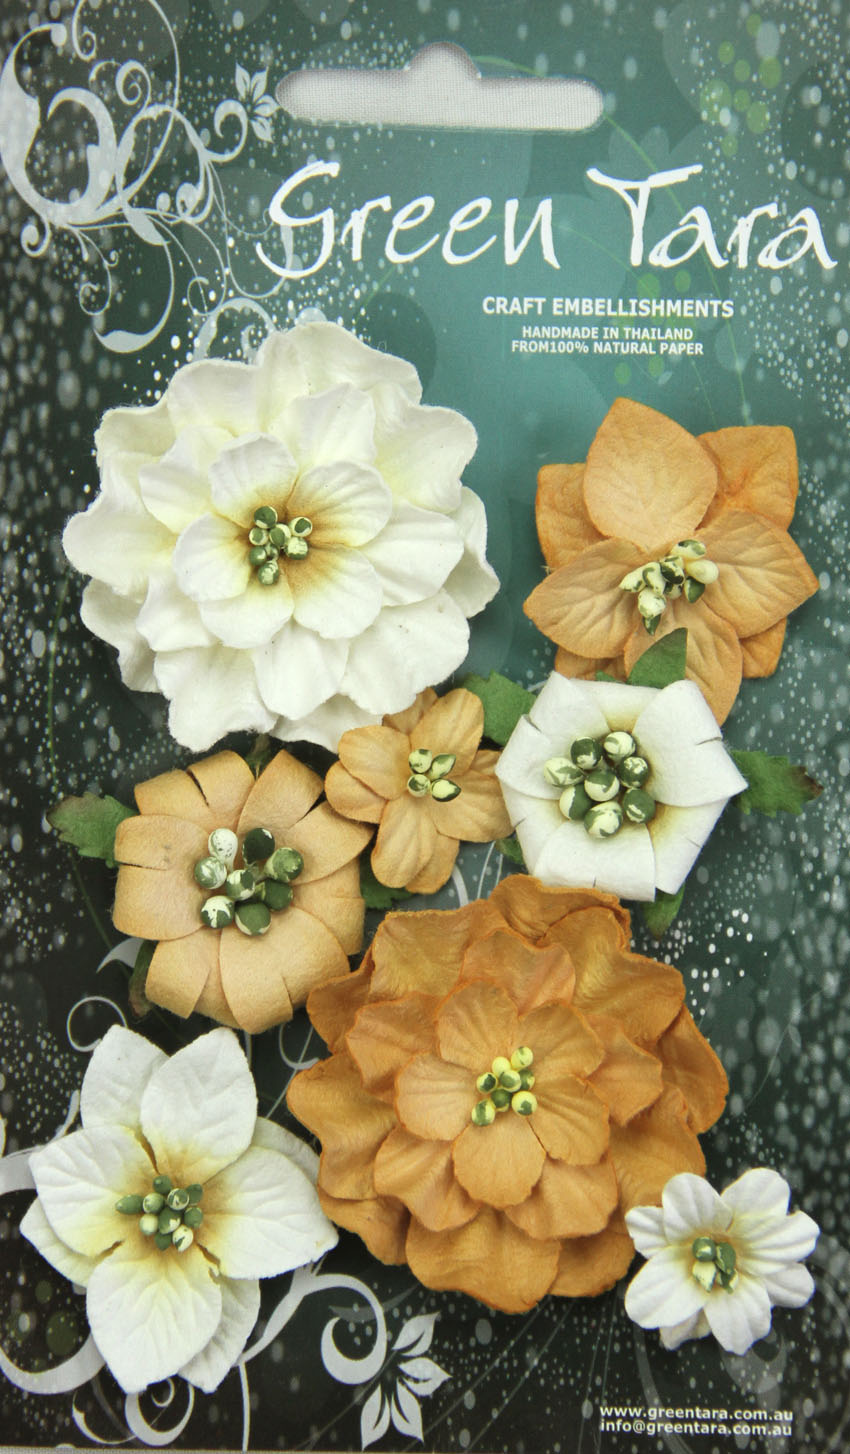 Fantasy Blooms - Pack of 8 Co-ordinated Flowers, OCHRE